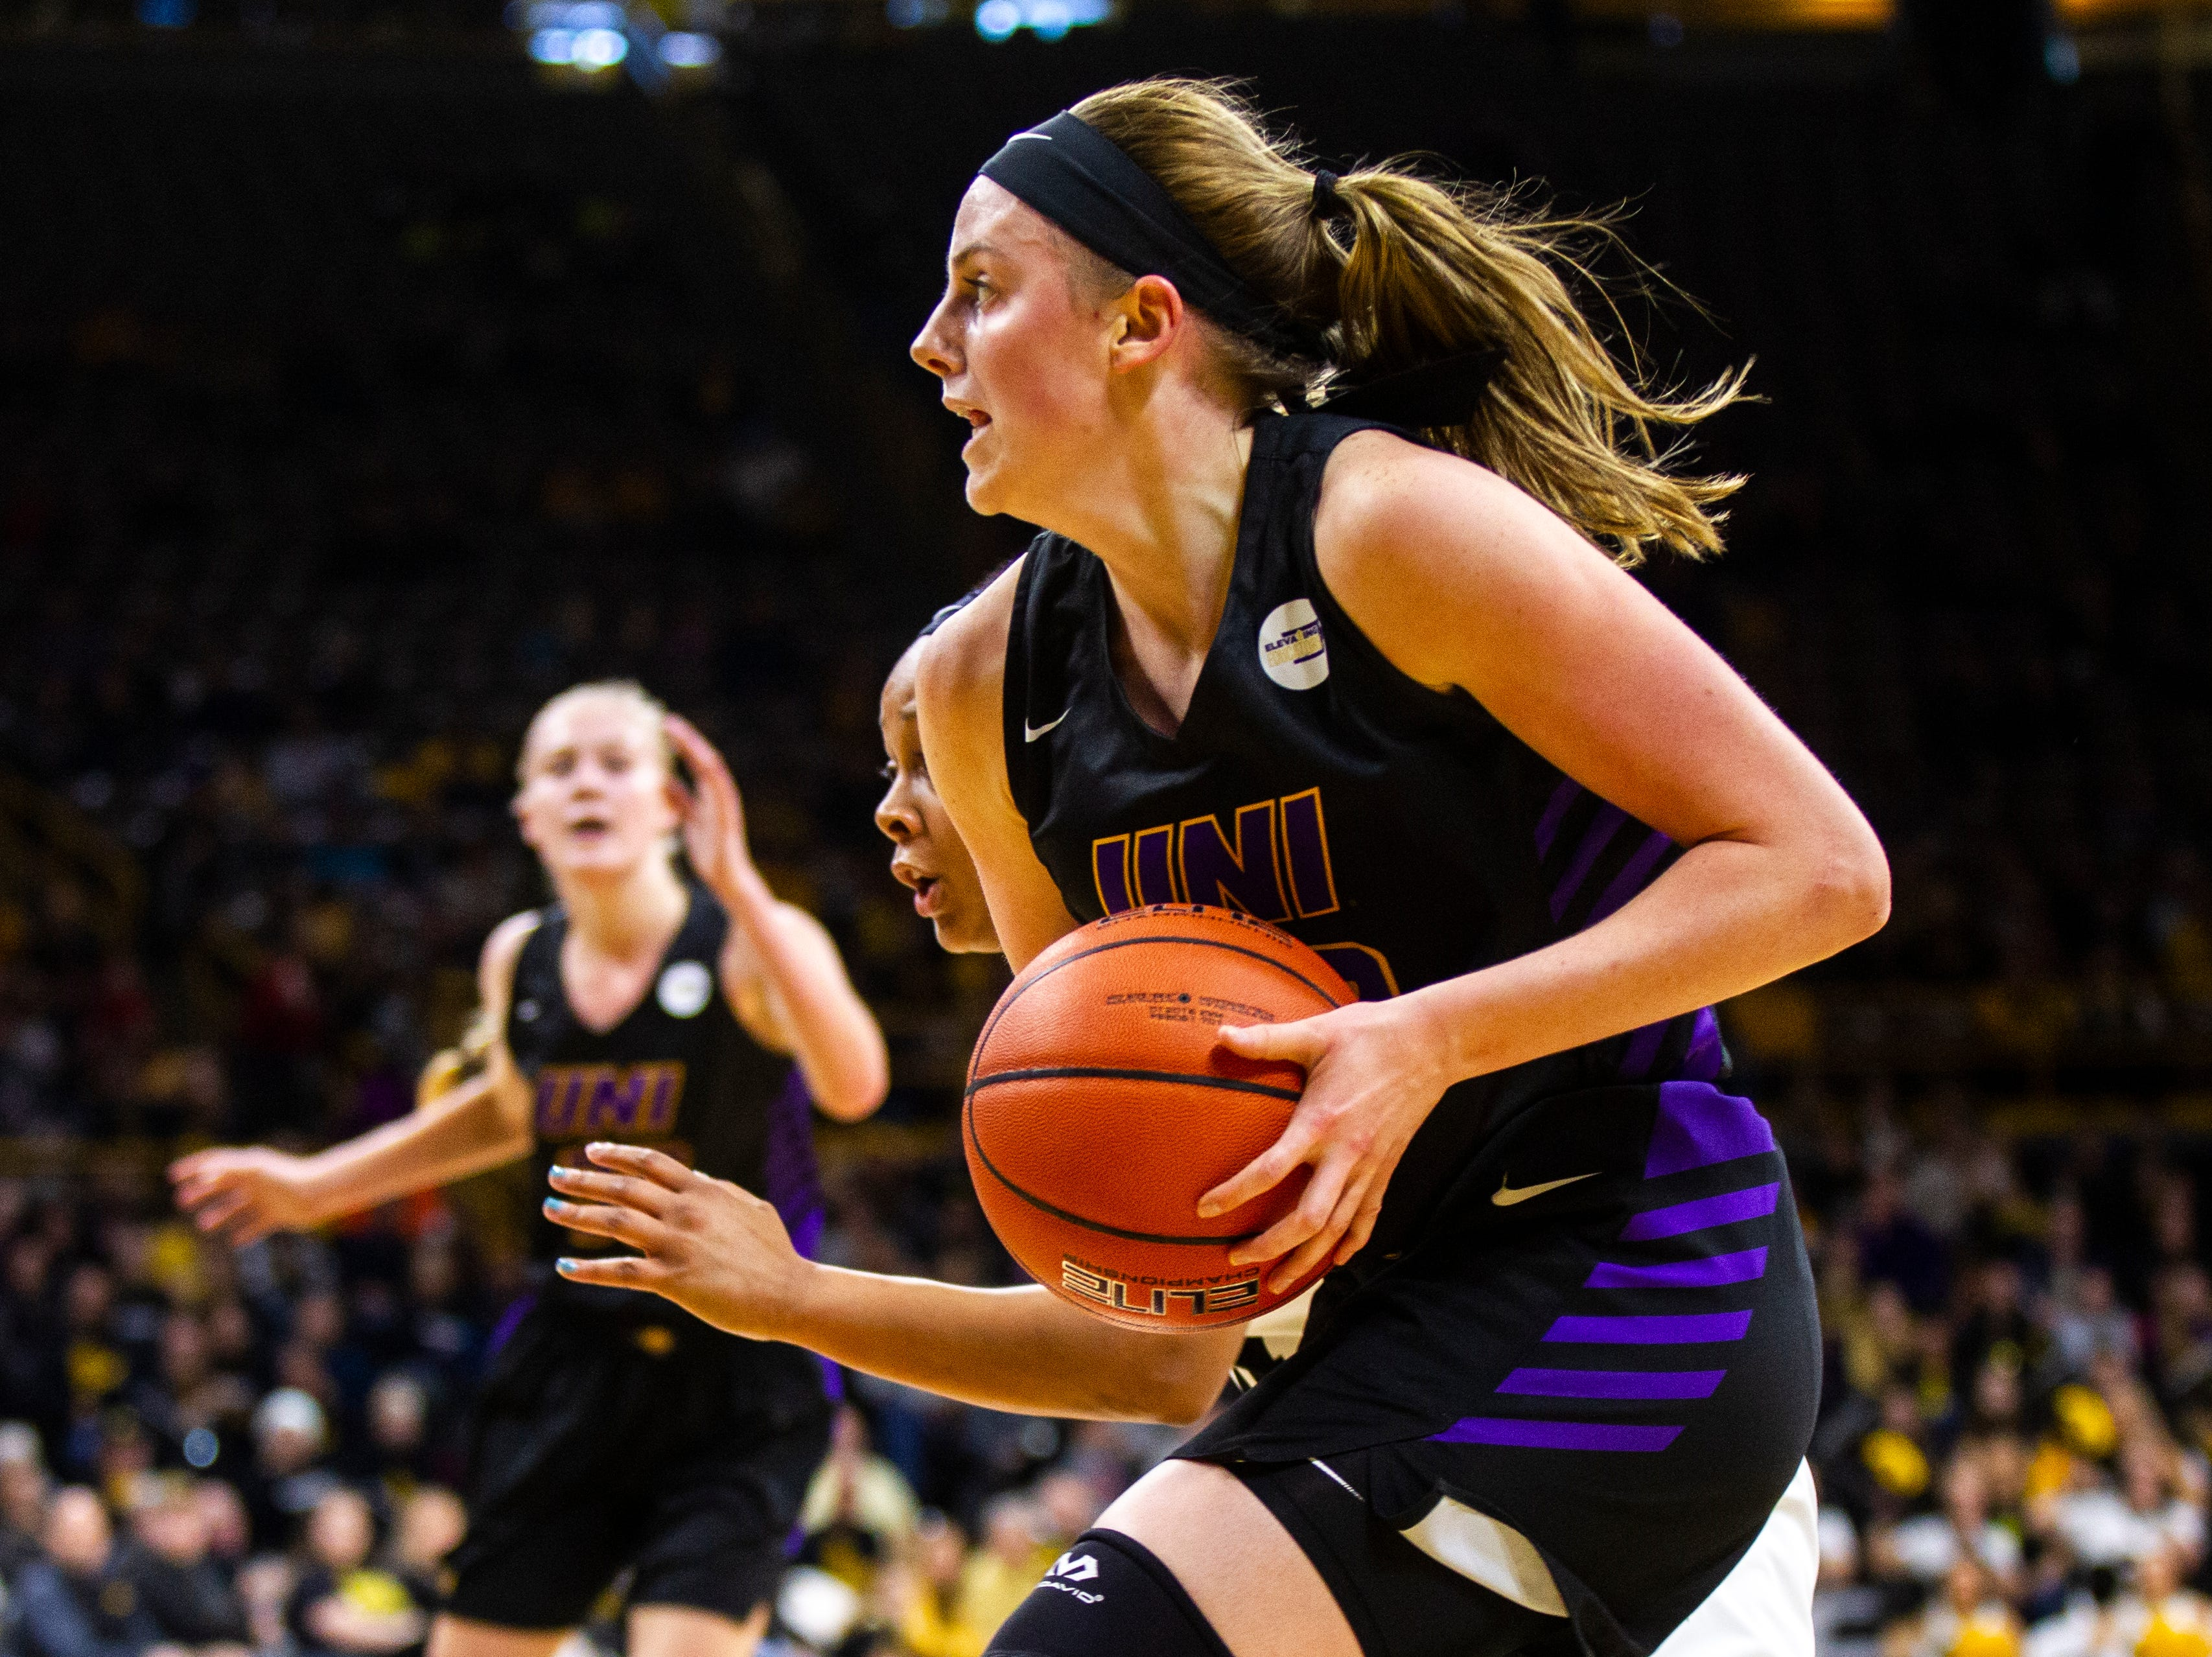 Northern Iowa guard Ellie Howell (10) drives to the hoop during a NCAA women's basketball game on Sunday, Dec. 16, 2018, at Carver-Hawkeye Arena in Iowa City.